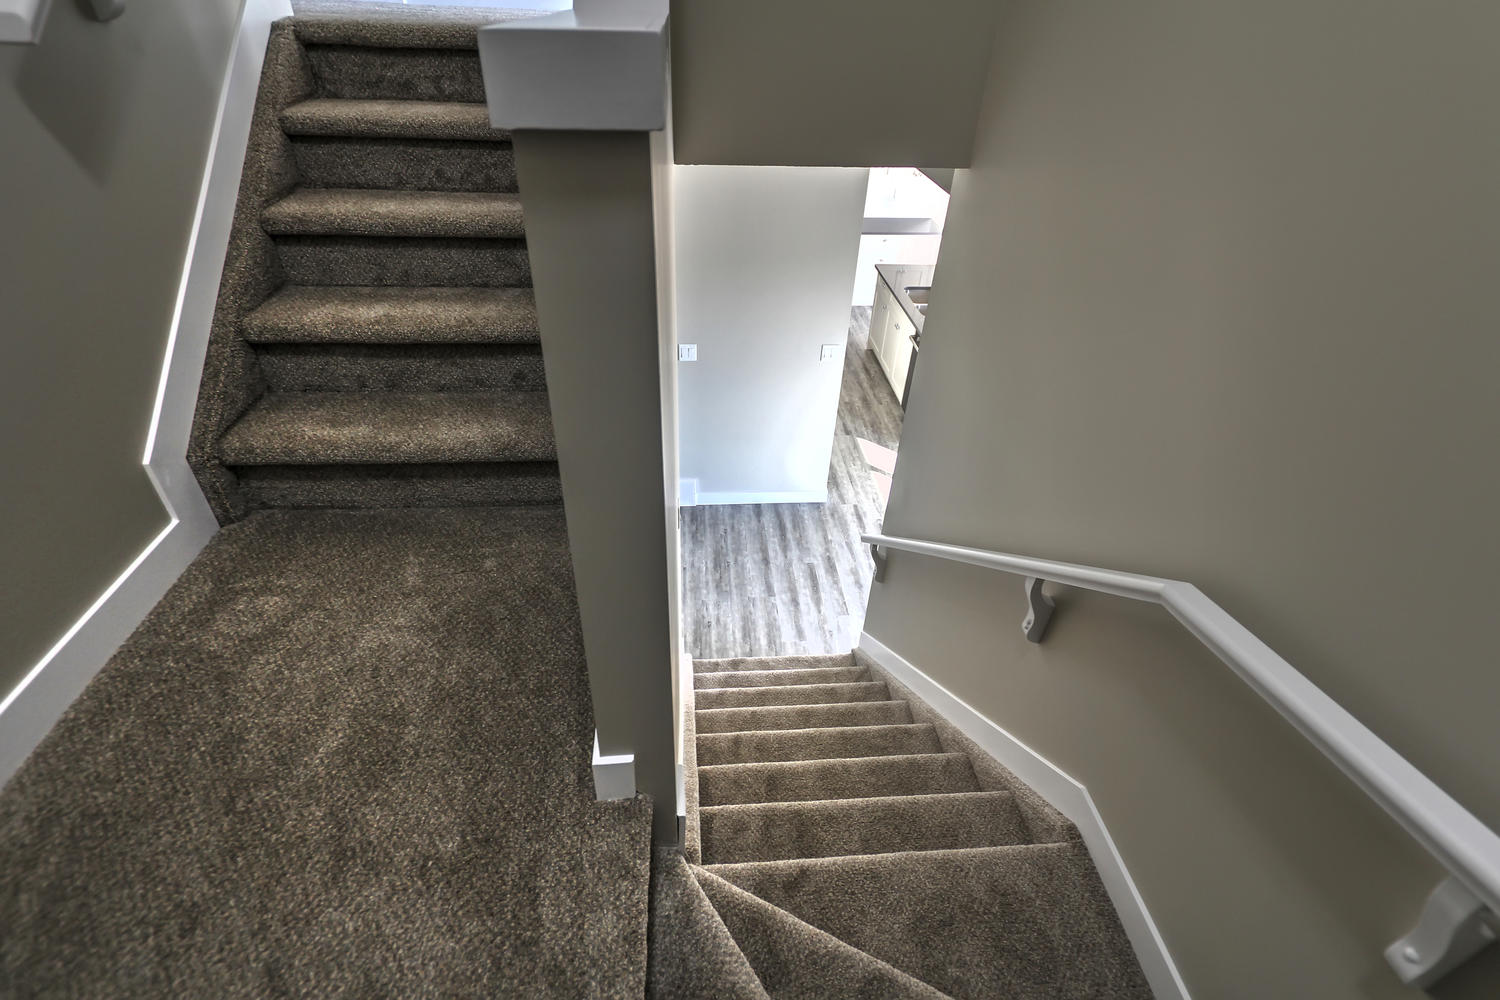 9603 106 Ave Morinville AB T8R-large-035-53-Staircase-1500x1000-72dpi.jpg